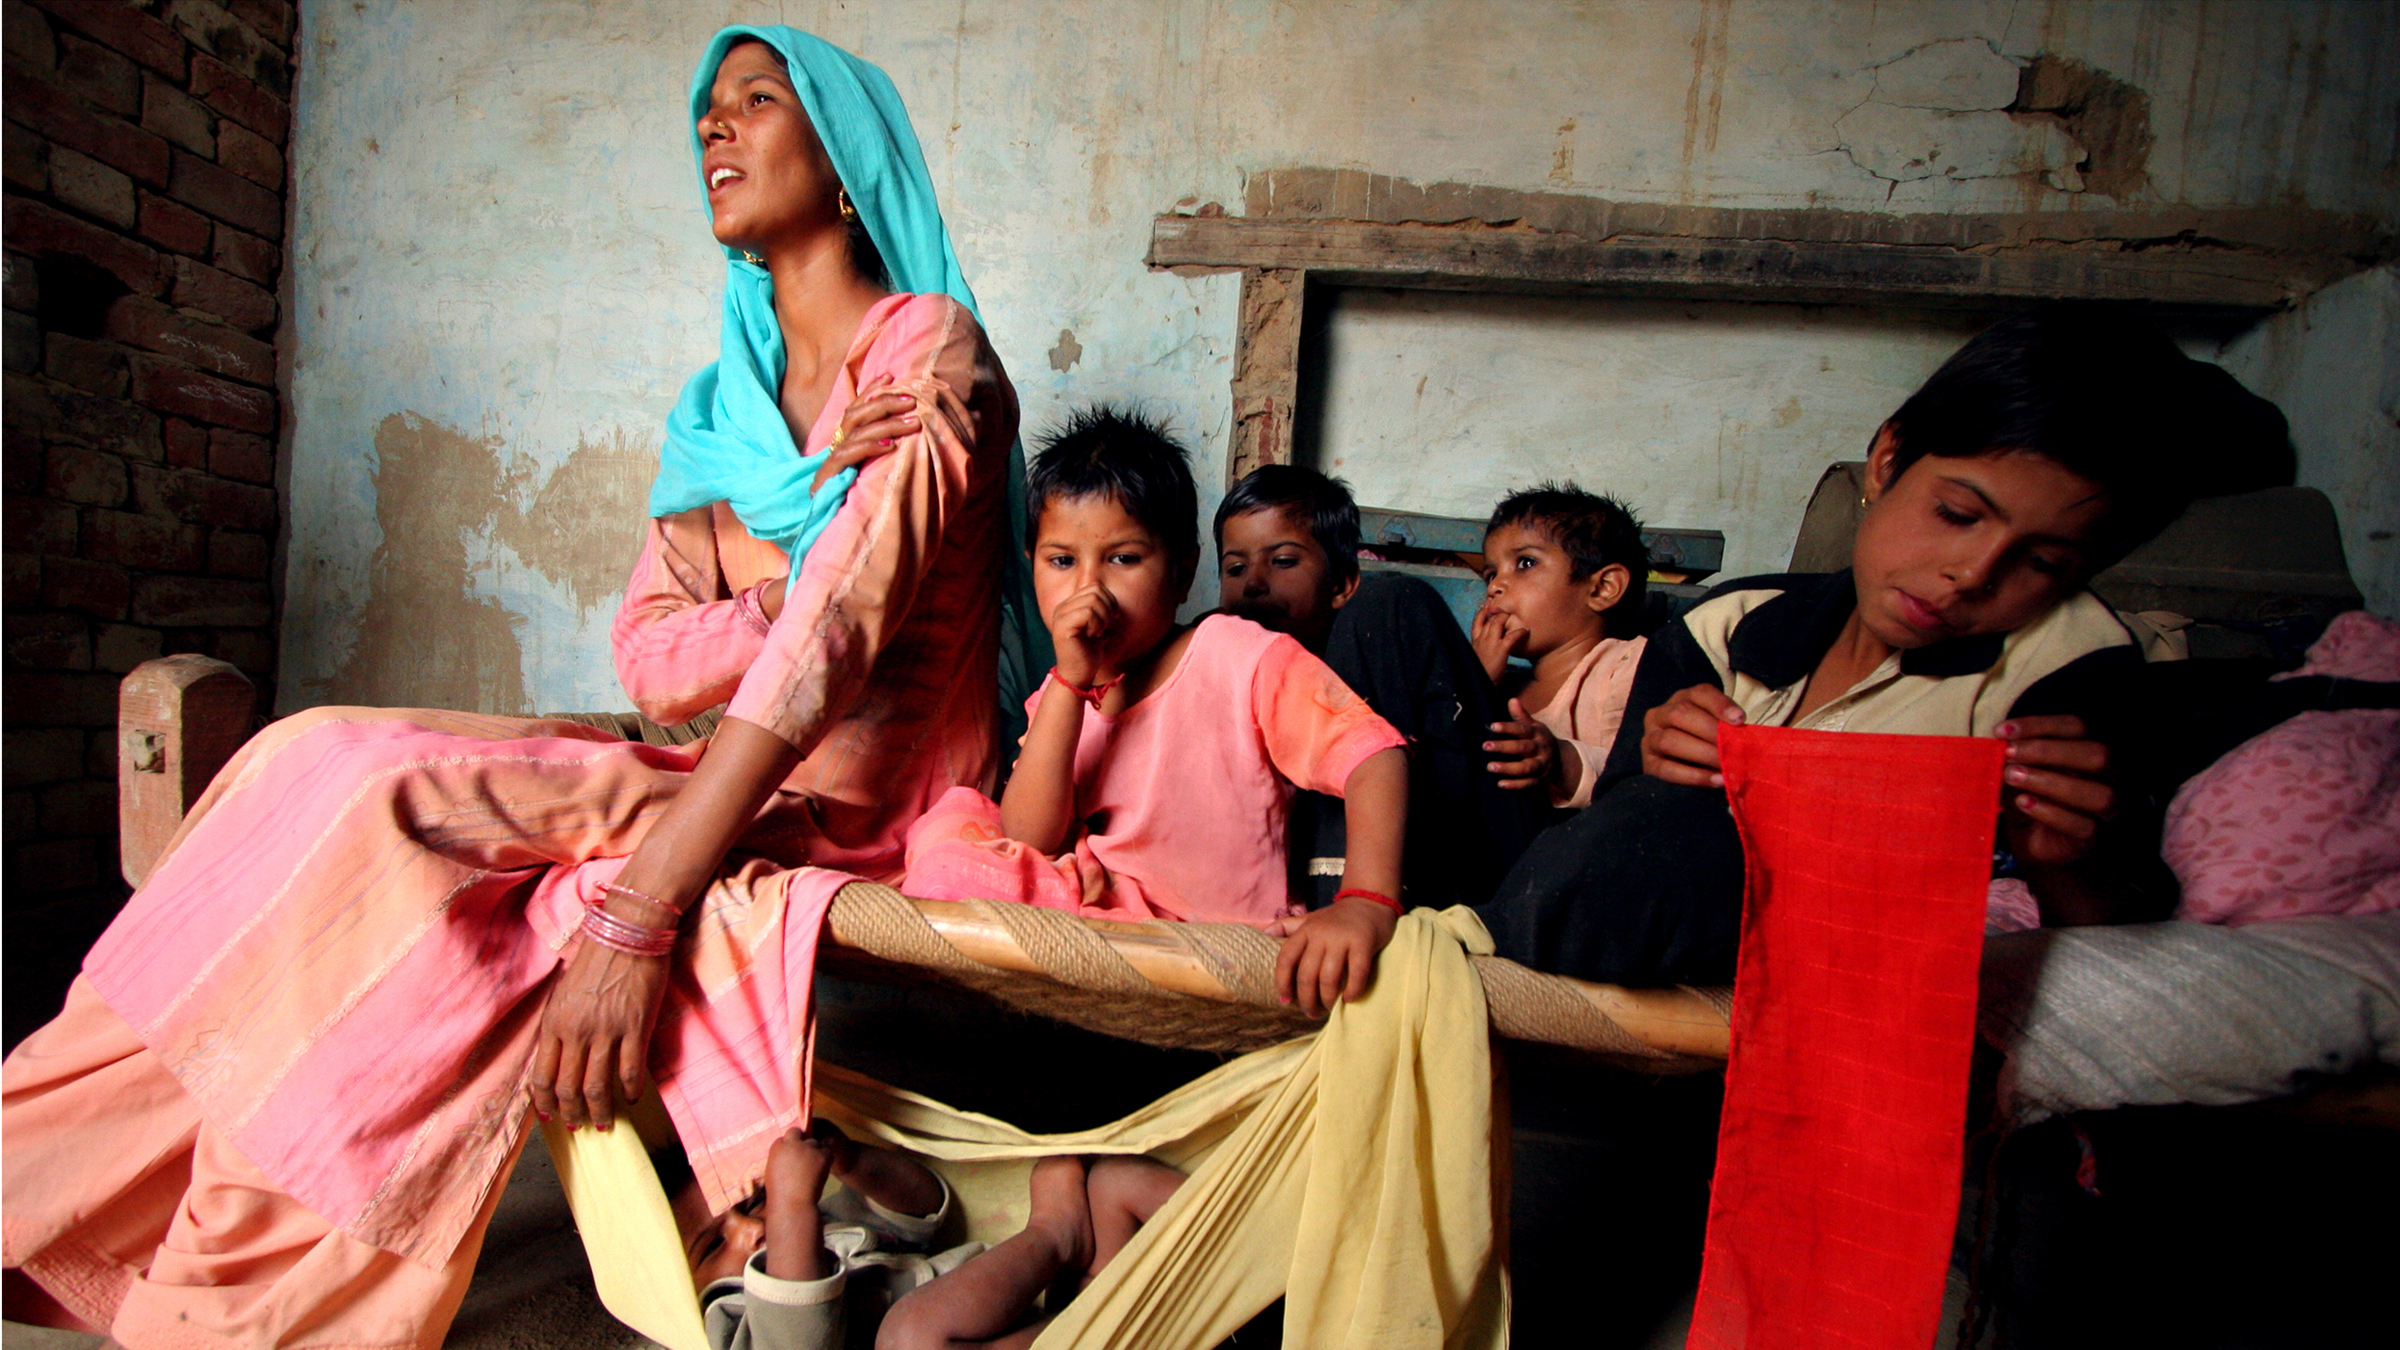 Married off at the age of 13, Rajbala's reproductive journey began six months later.